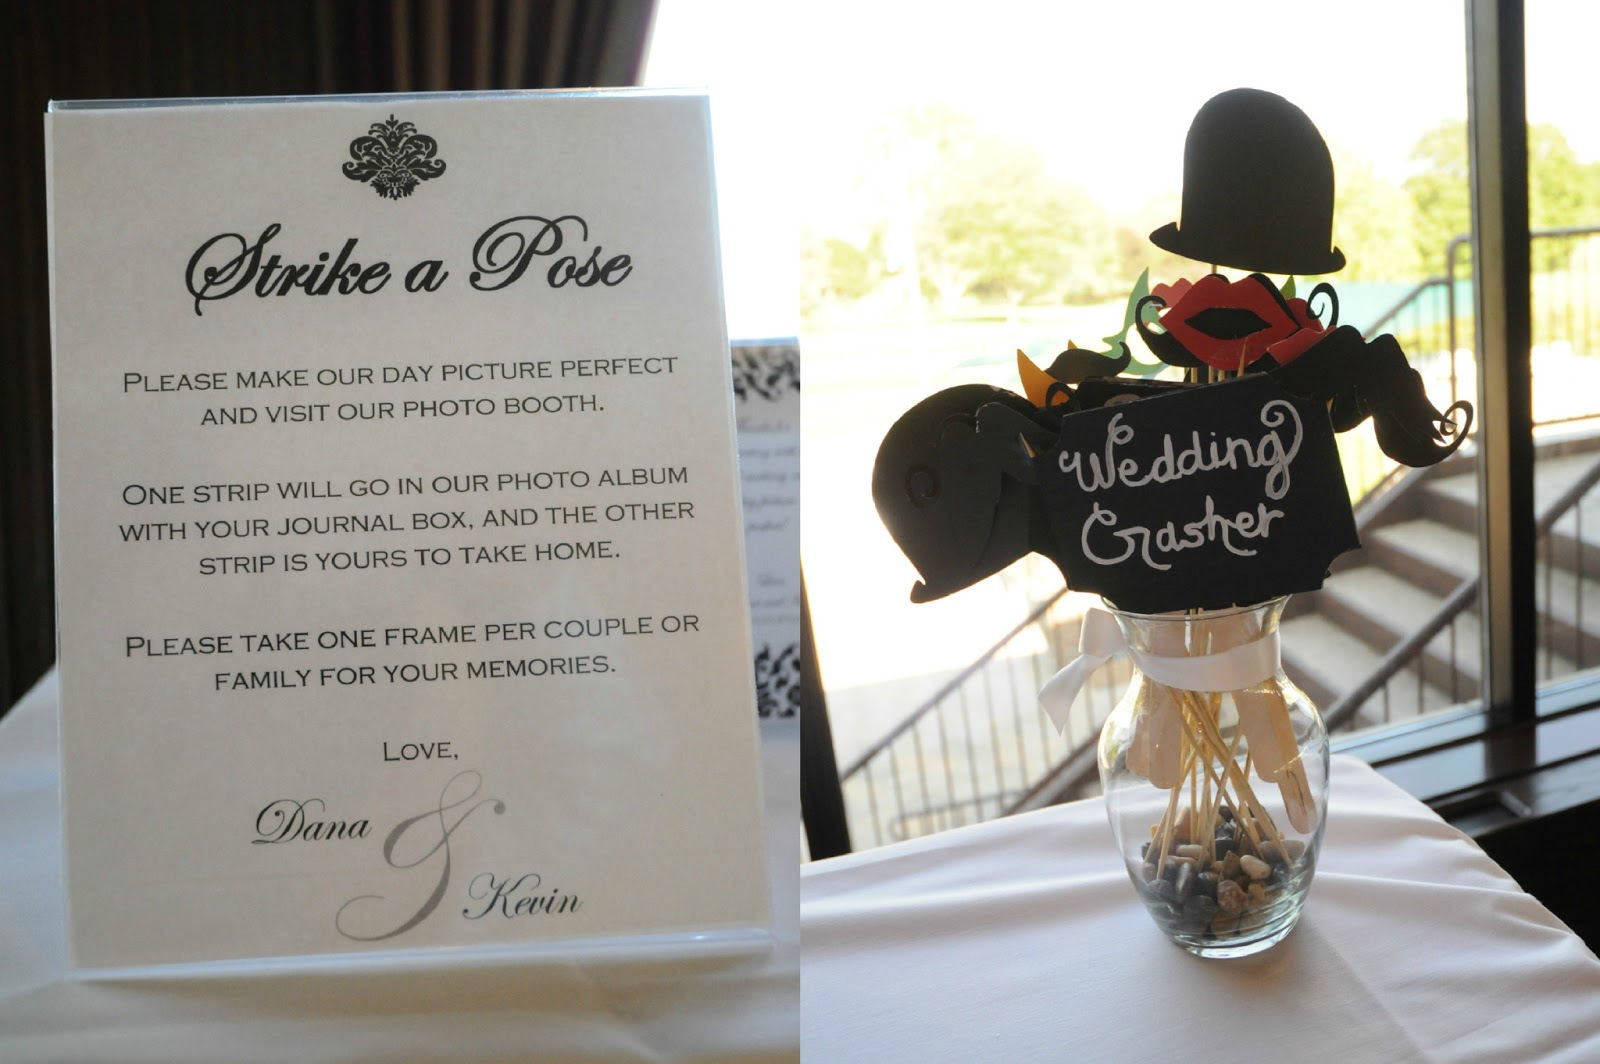 Ideas For Wedding Photo Booth: Inspired I Dos: Creative Photo Booth Wedding Ideas